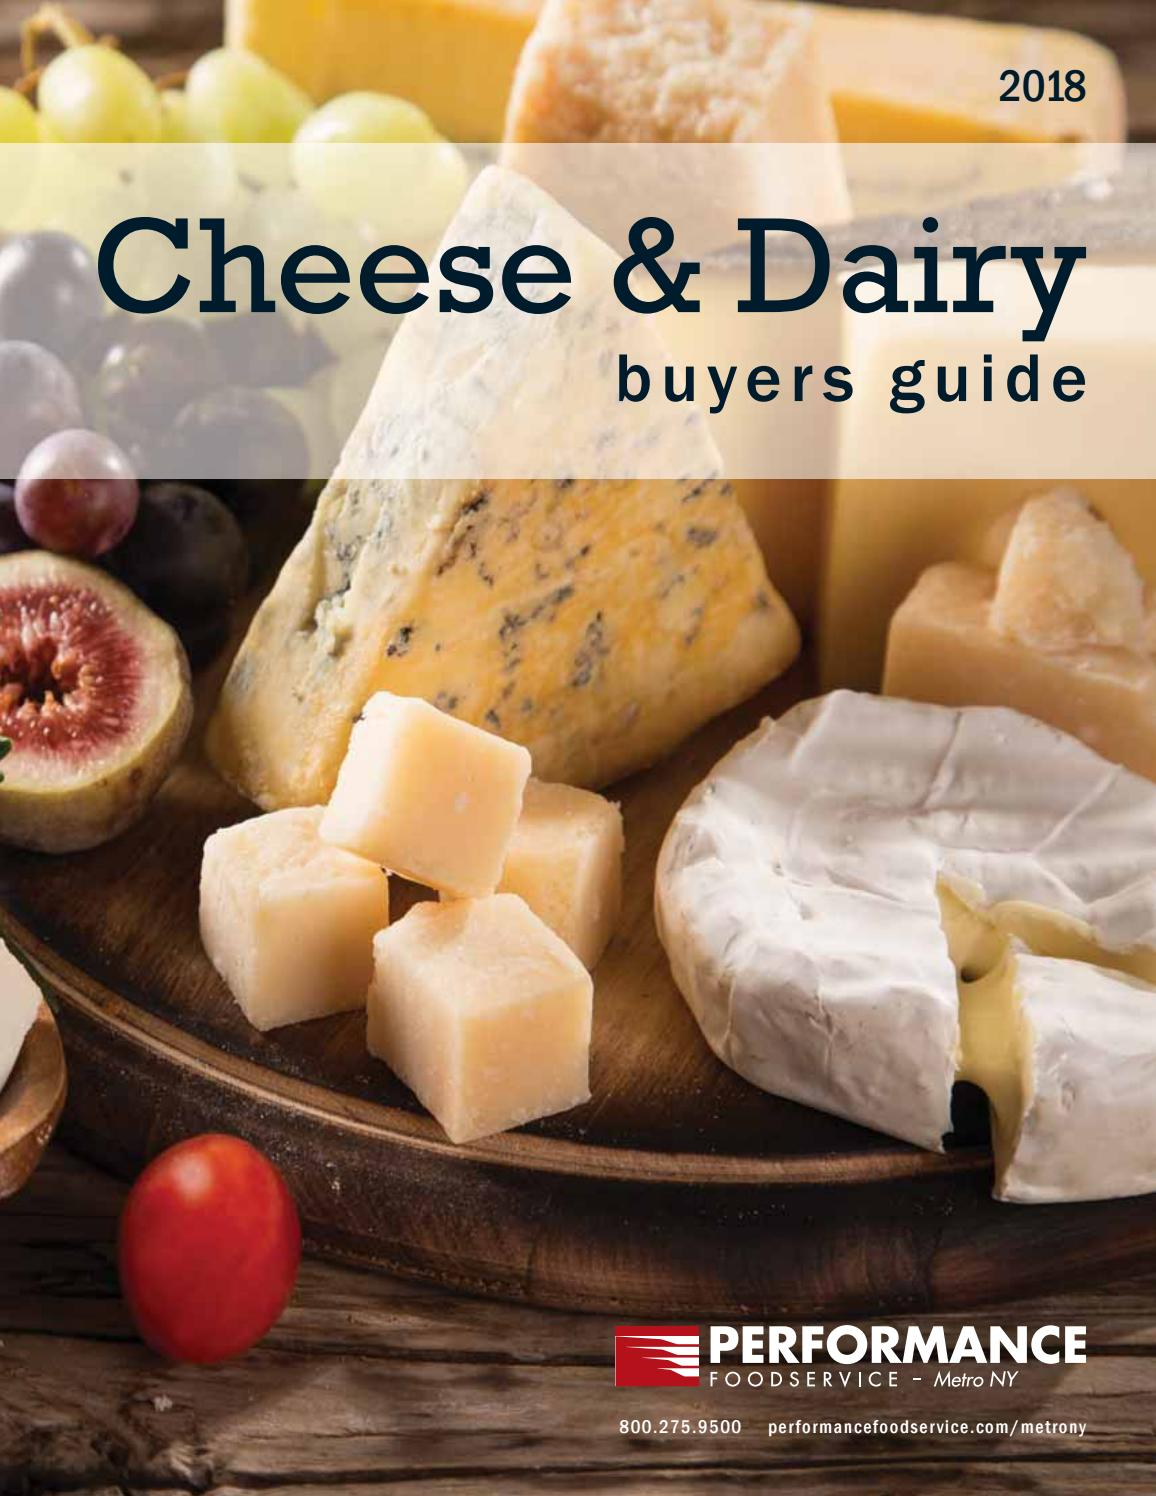 Cheese & Dairy Buyers Guide: Performance Foodservice - Metro